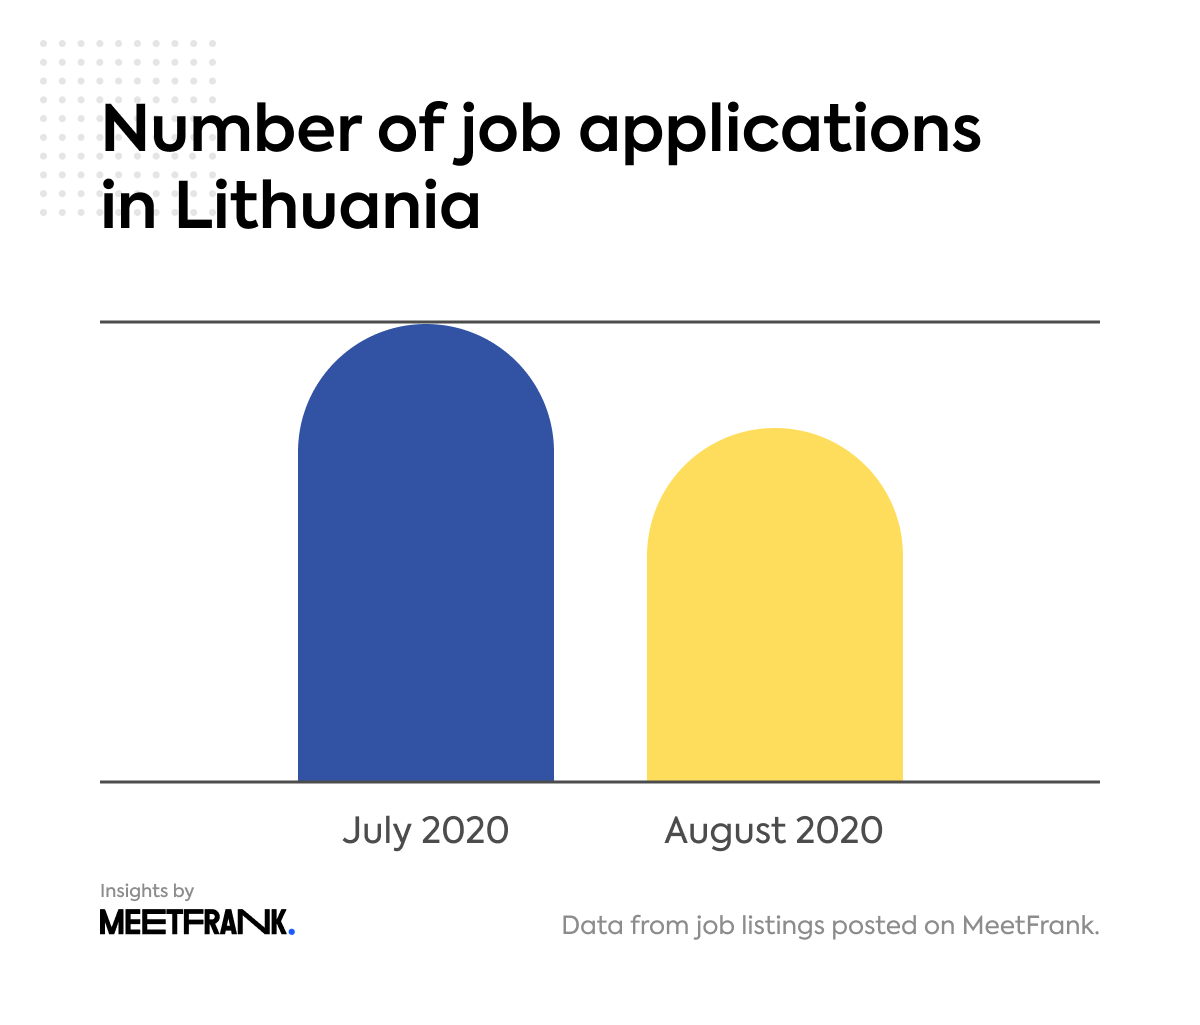 applications in Lithuania in August